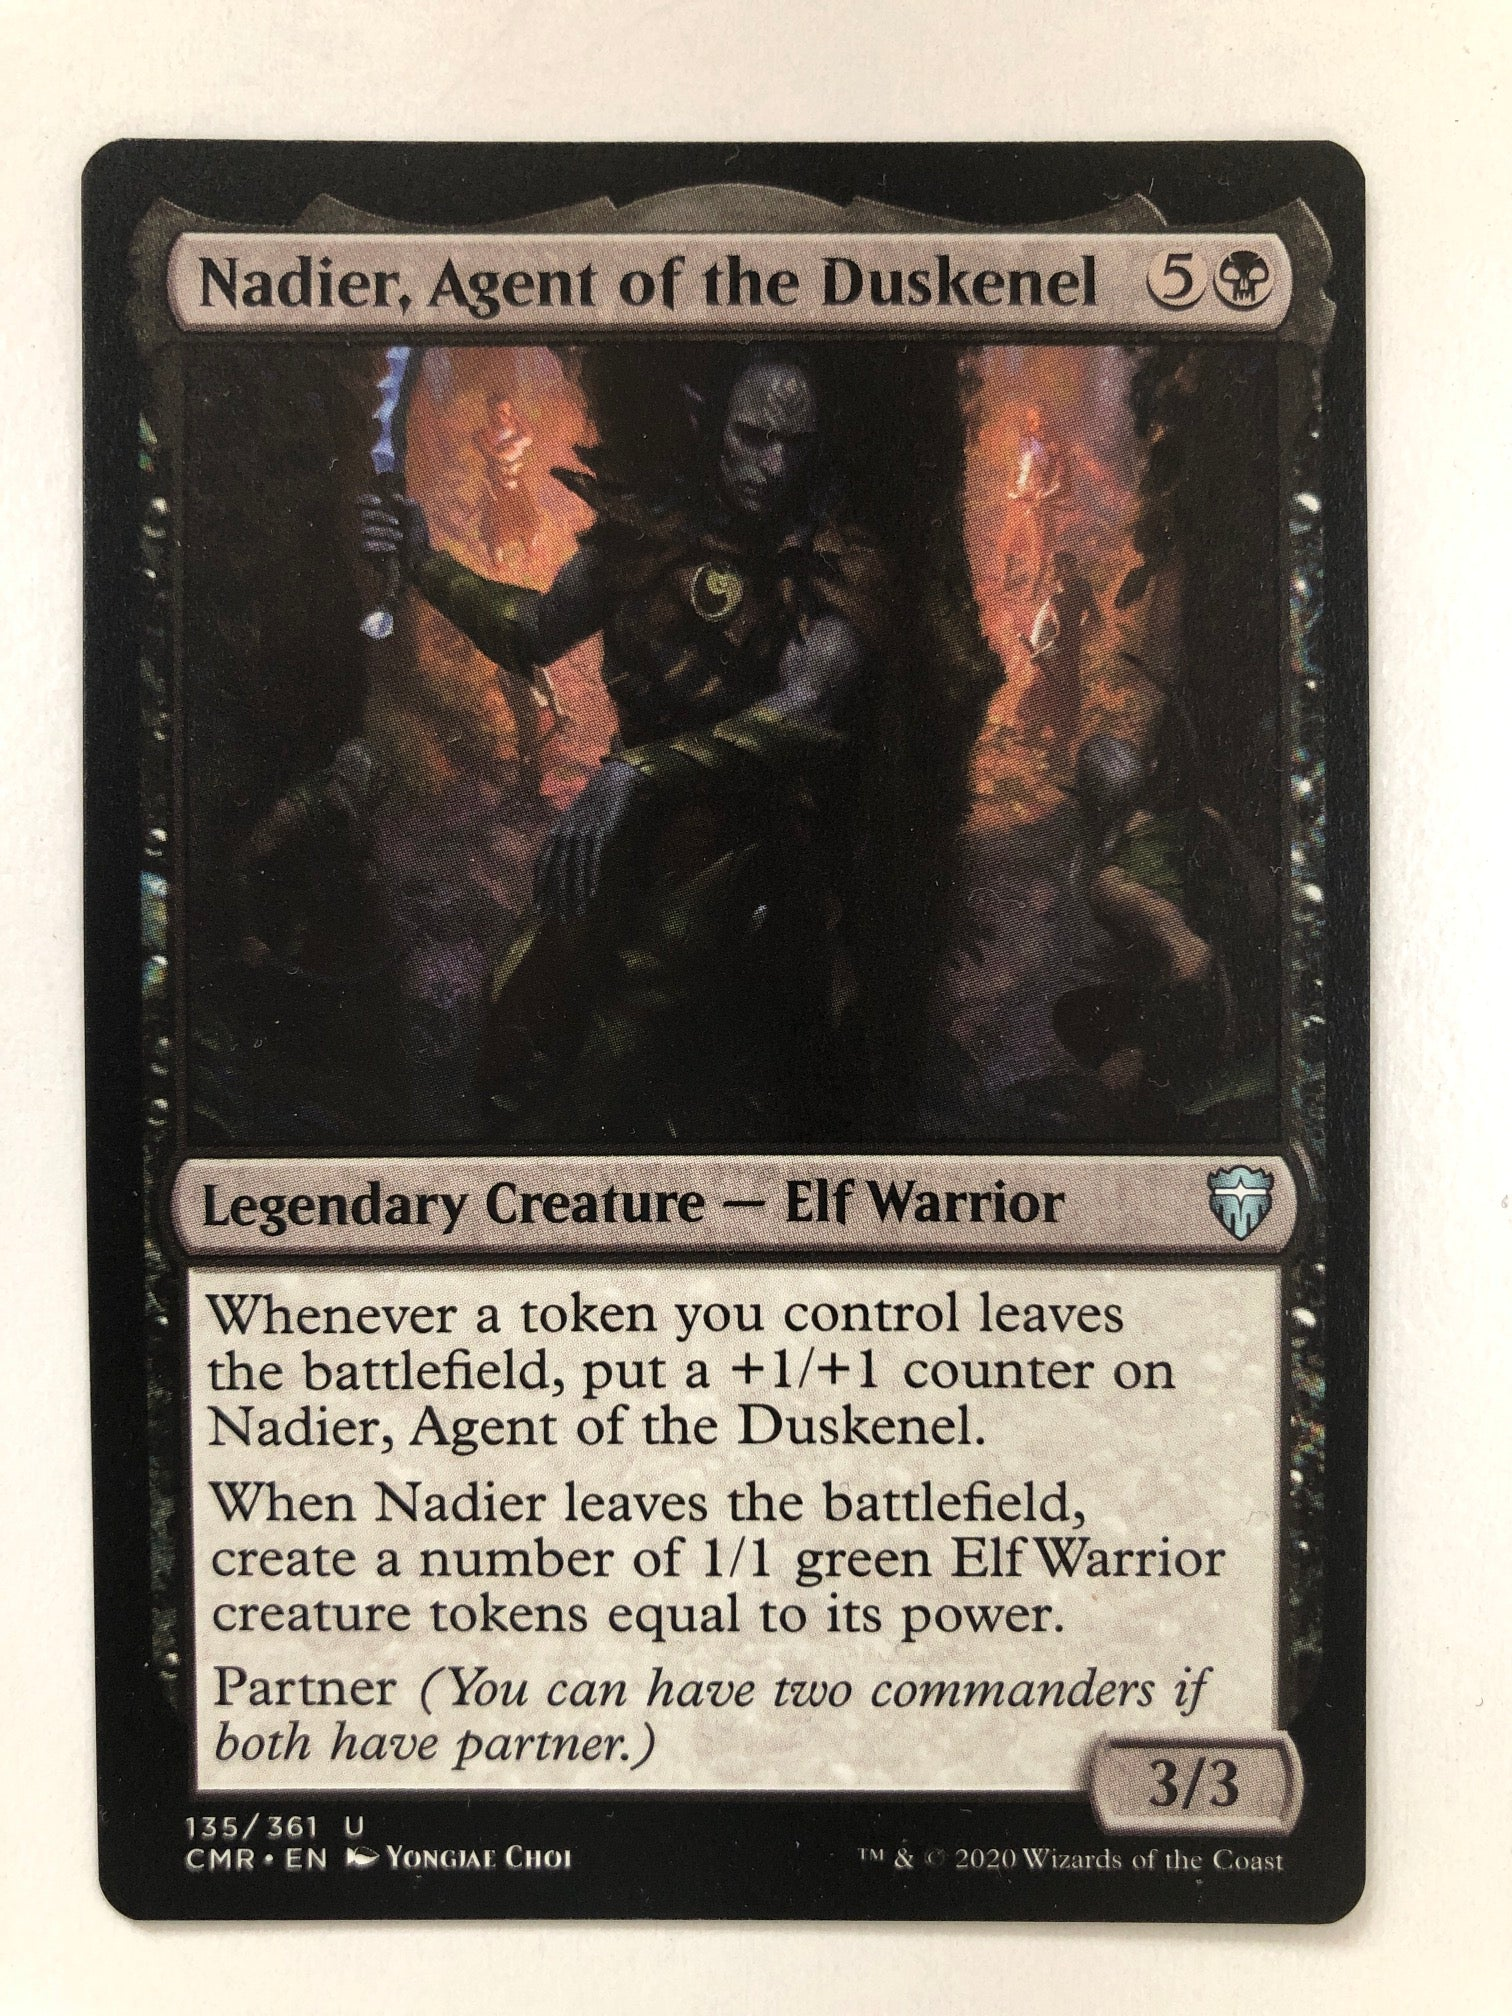 Nadier, Agent of the Duskenel - CMR 135/361 U (M/NM)